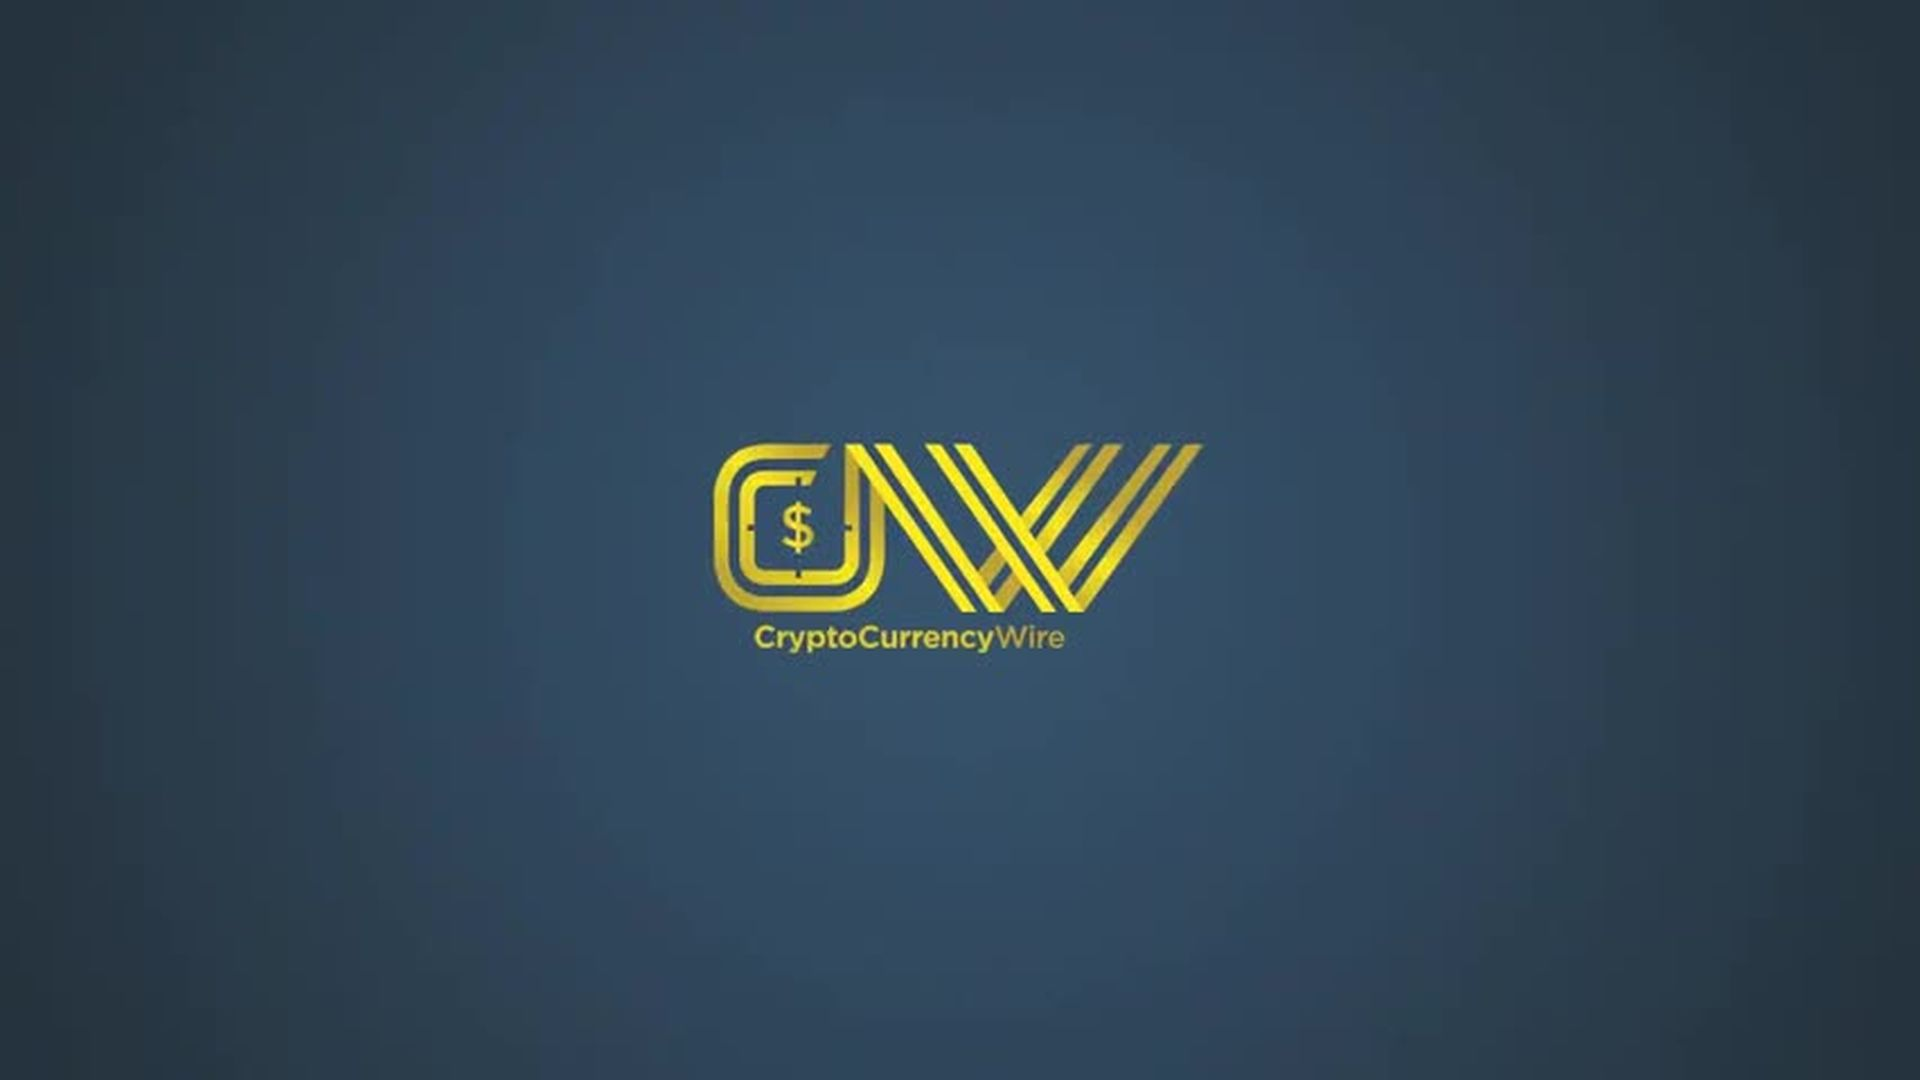 Cryptos Moving Up | CryptoCurrencyWire on The Wild West Crypto Show | Episode 107